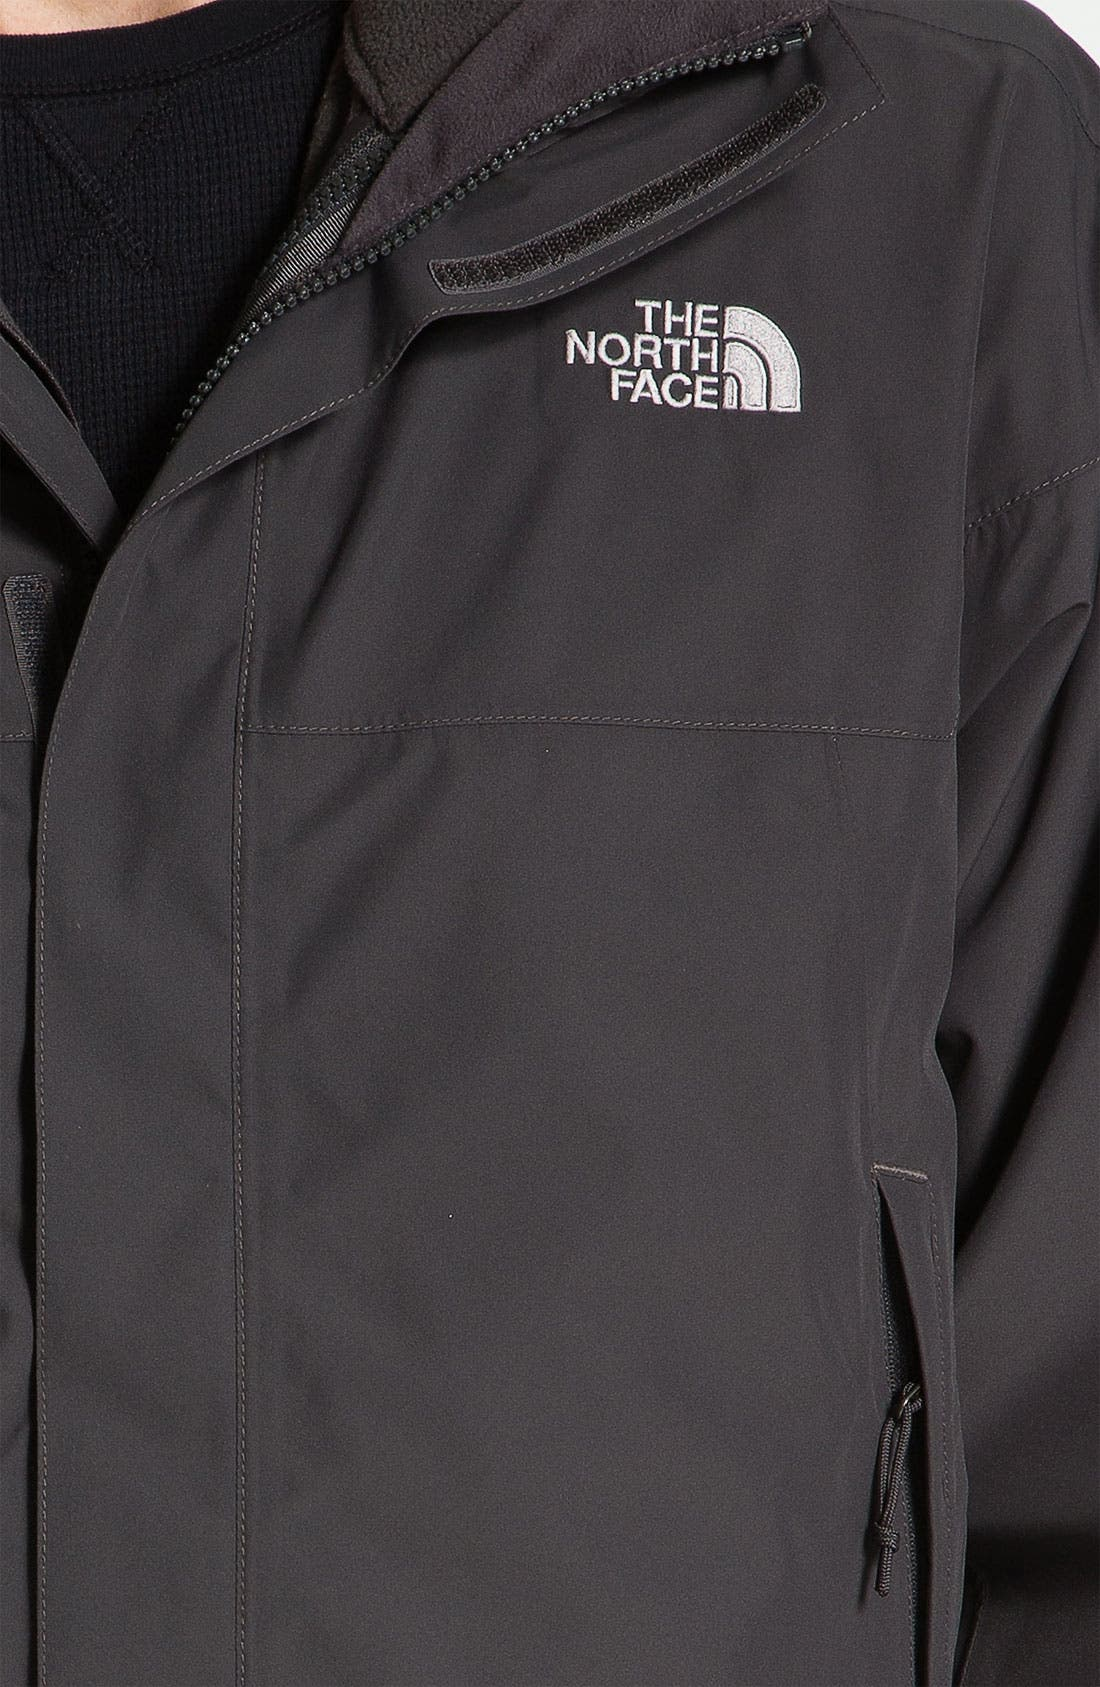 Alternate Image 3  - The North Face 'Phere' TriClimate™ 3-in-1 Jacket